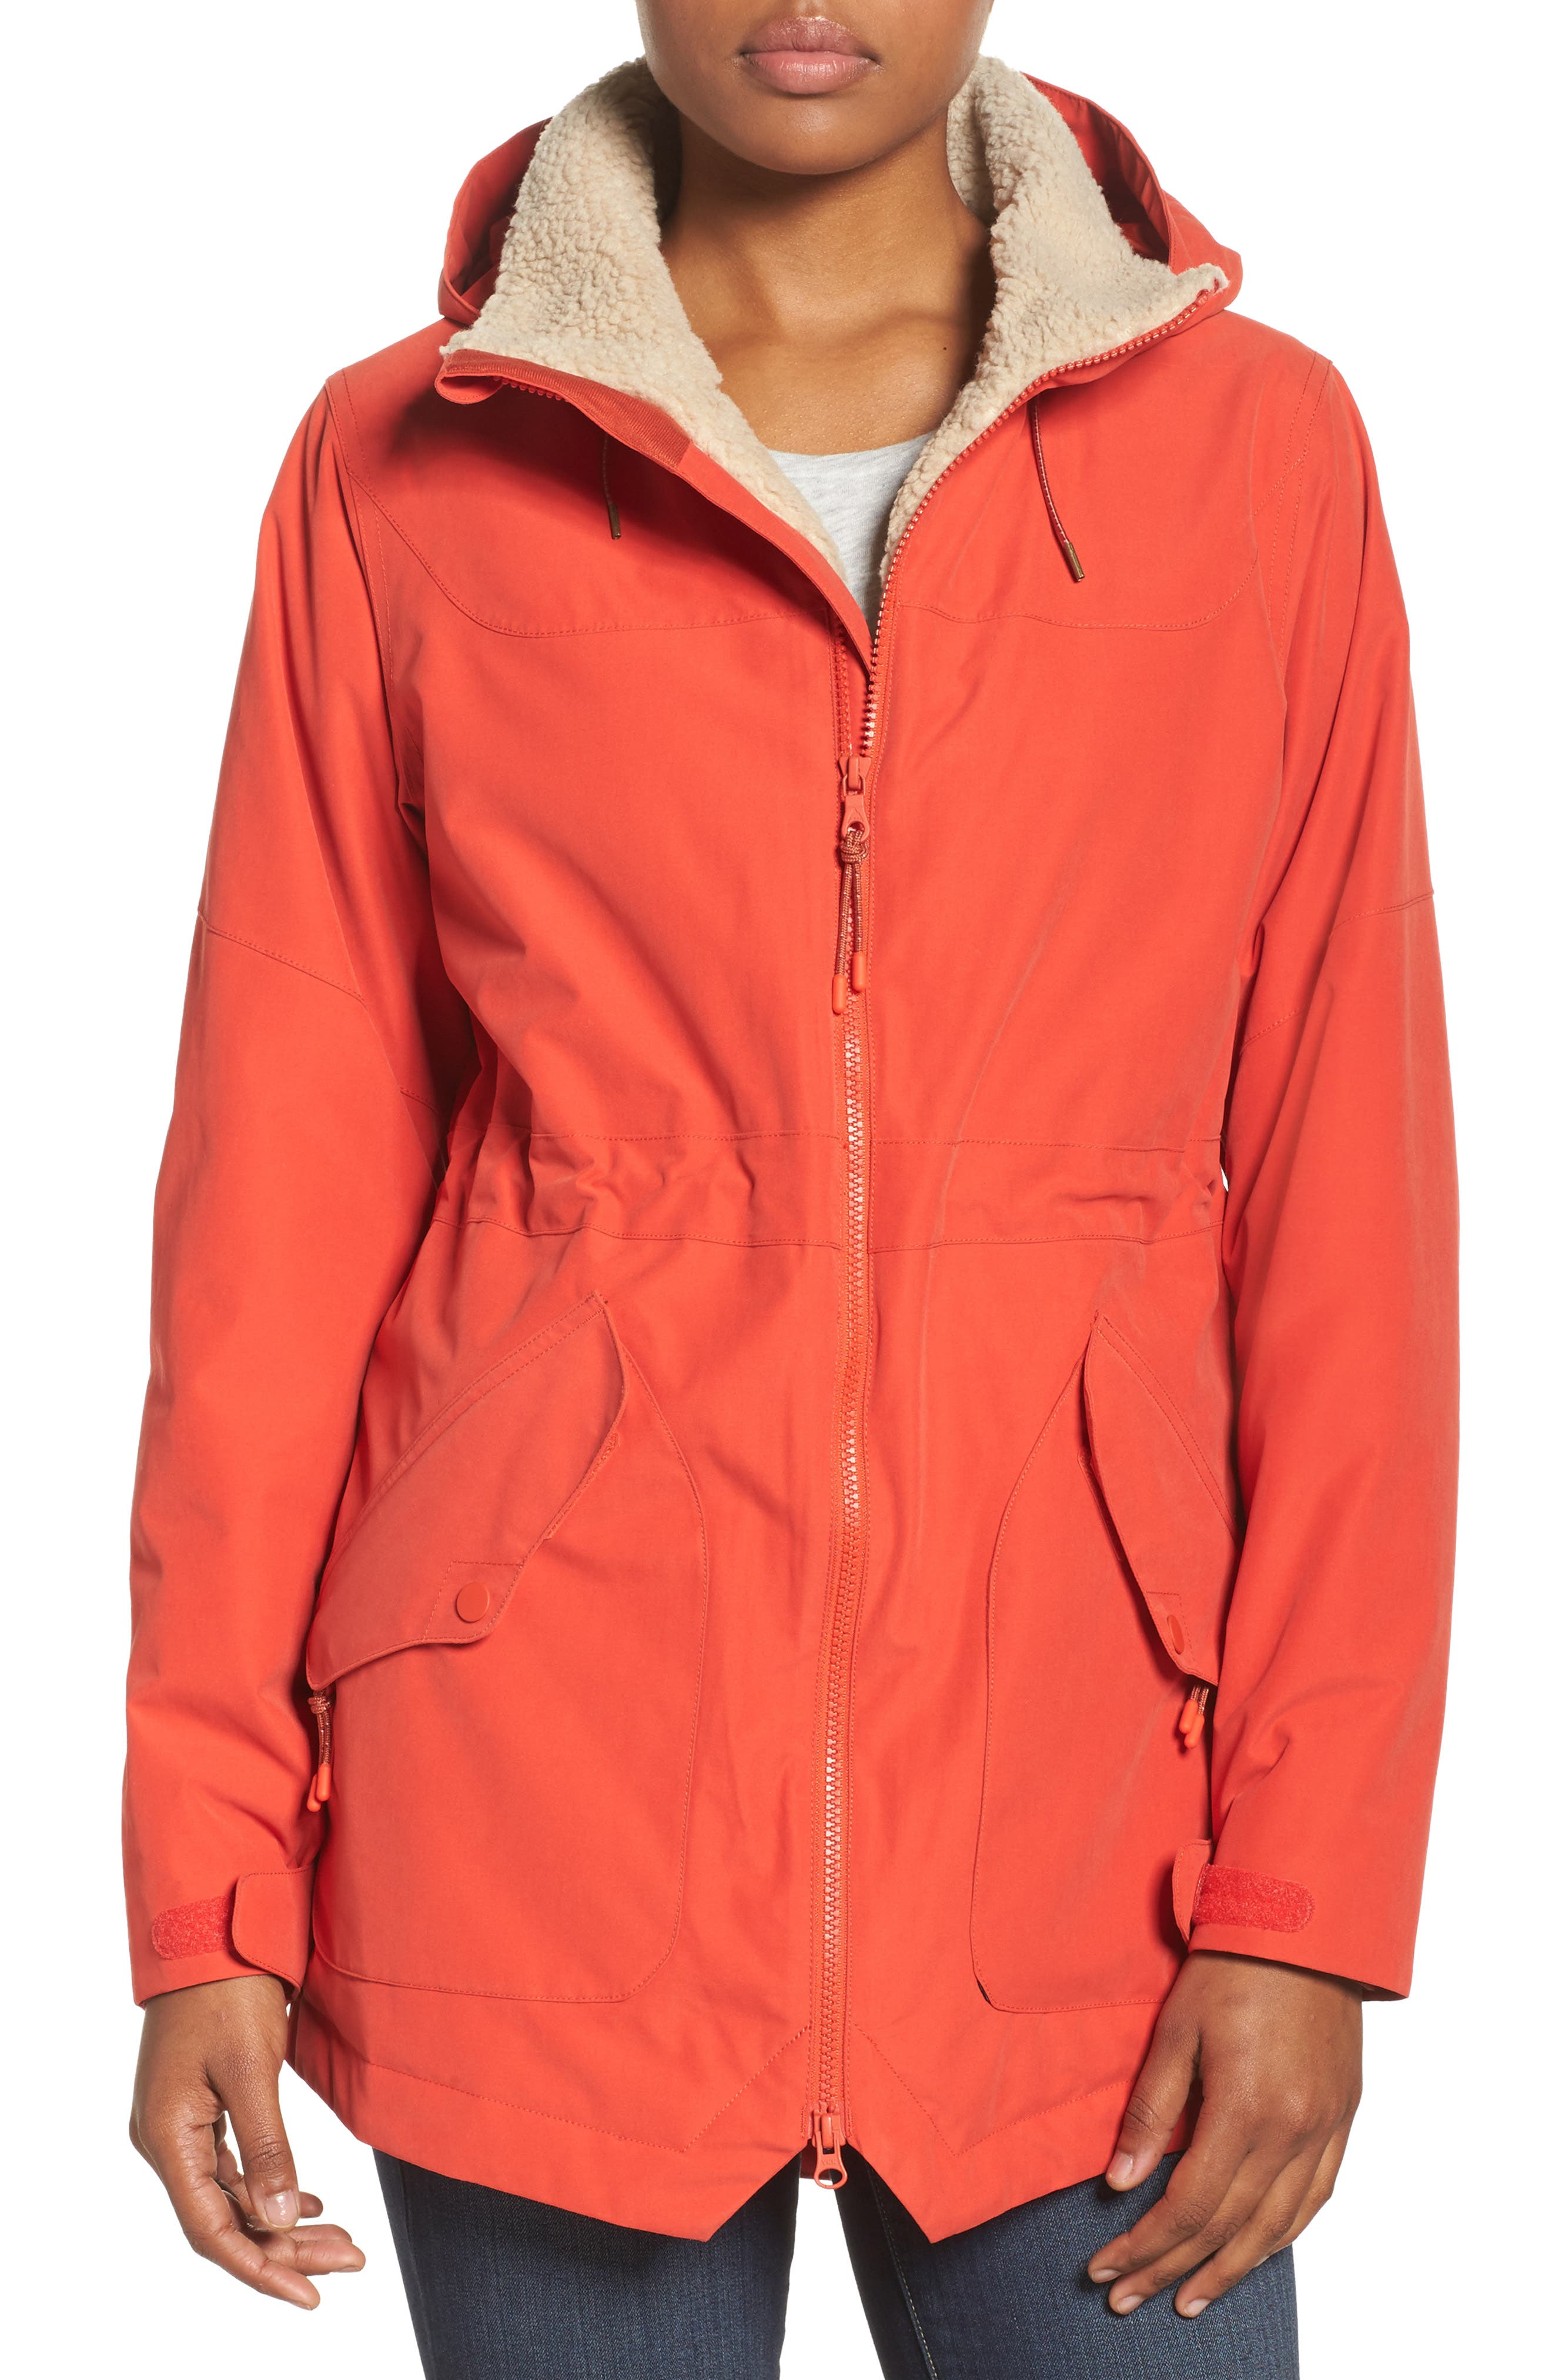 Prowess Fleece Lined Water Resistant Jacket,                             Main thumbnail 1, color,                             FIERY RED SUEDED